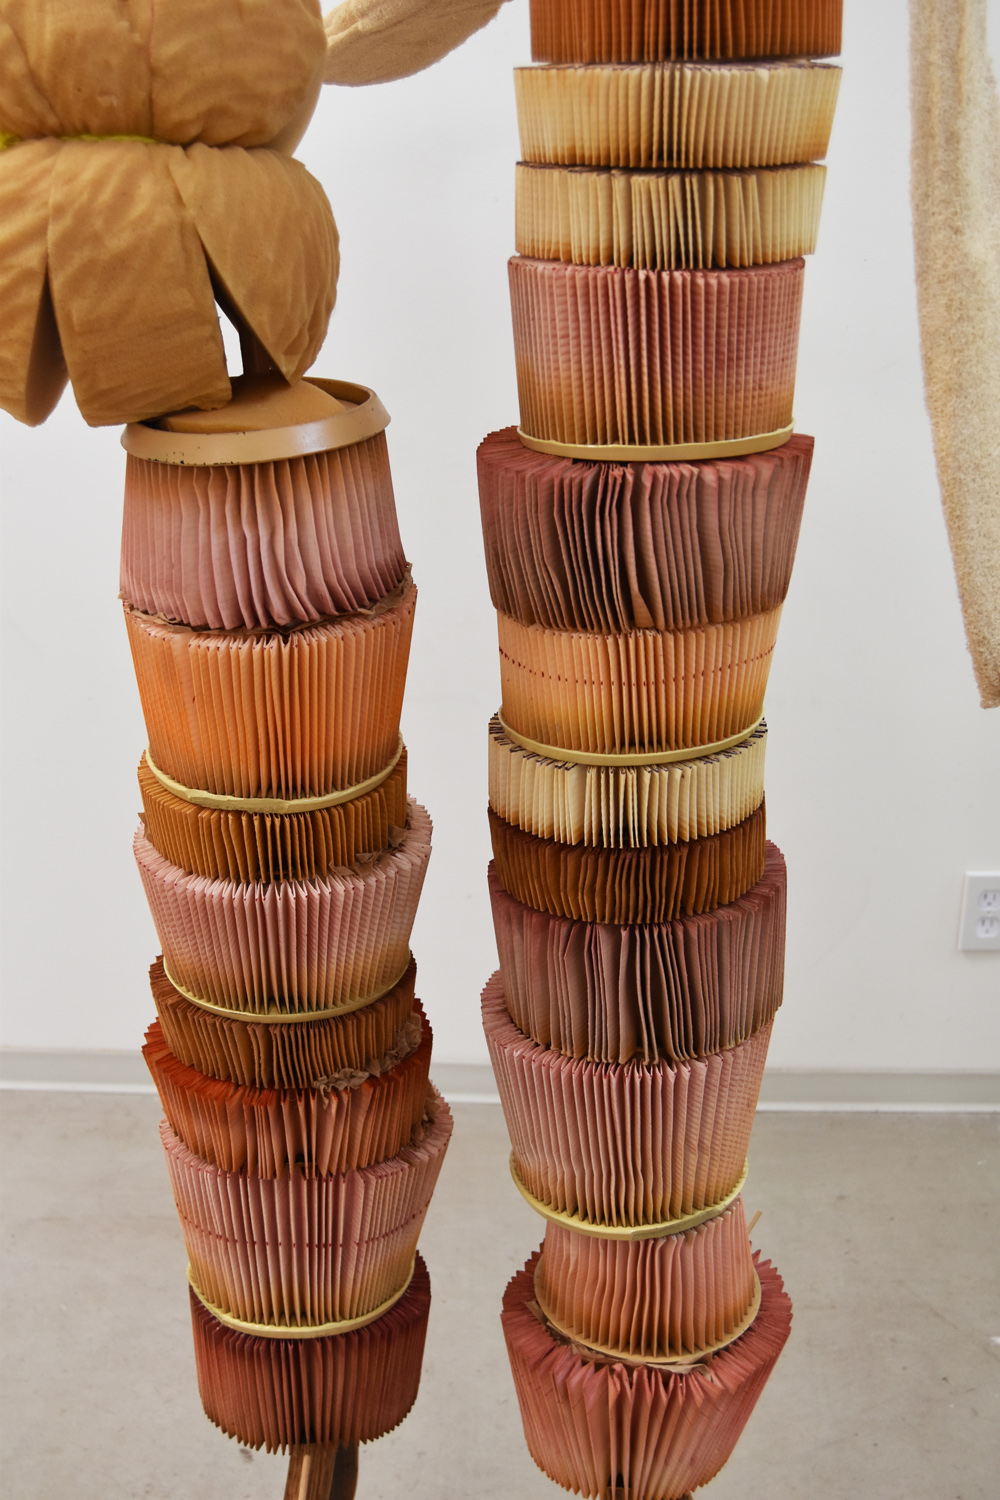 Narrow Tall Stacked & Tippy, Detail 2